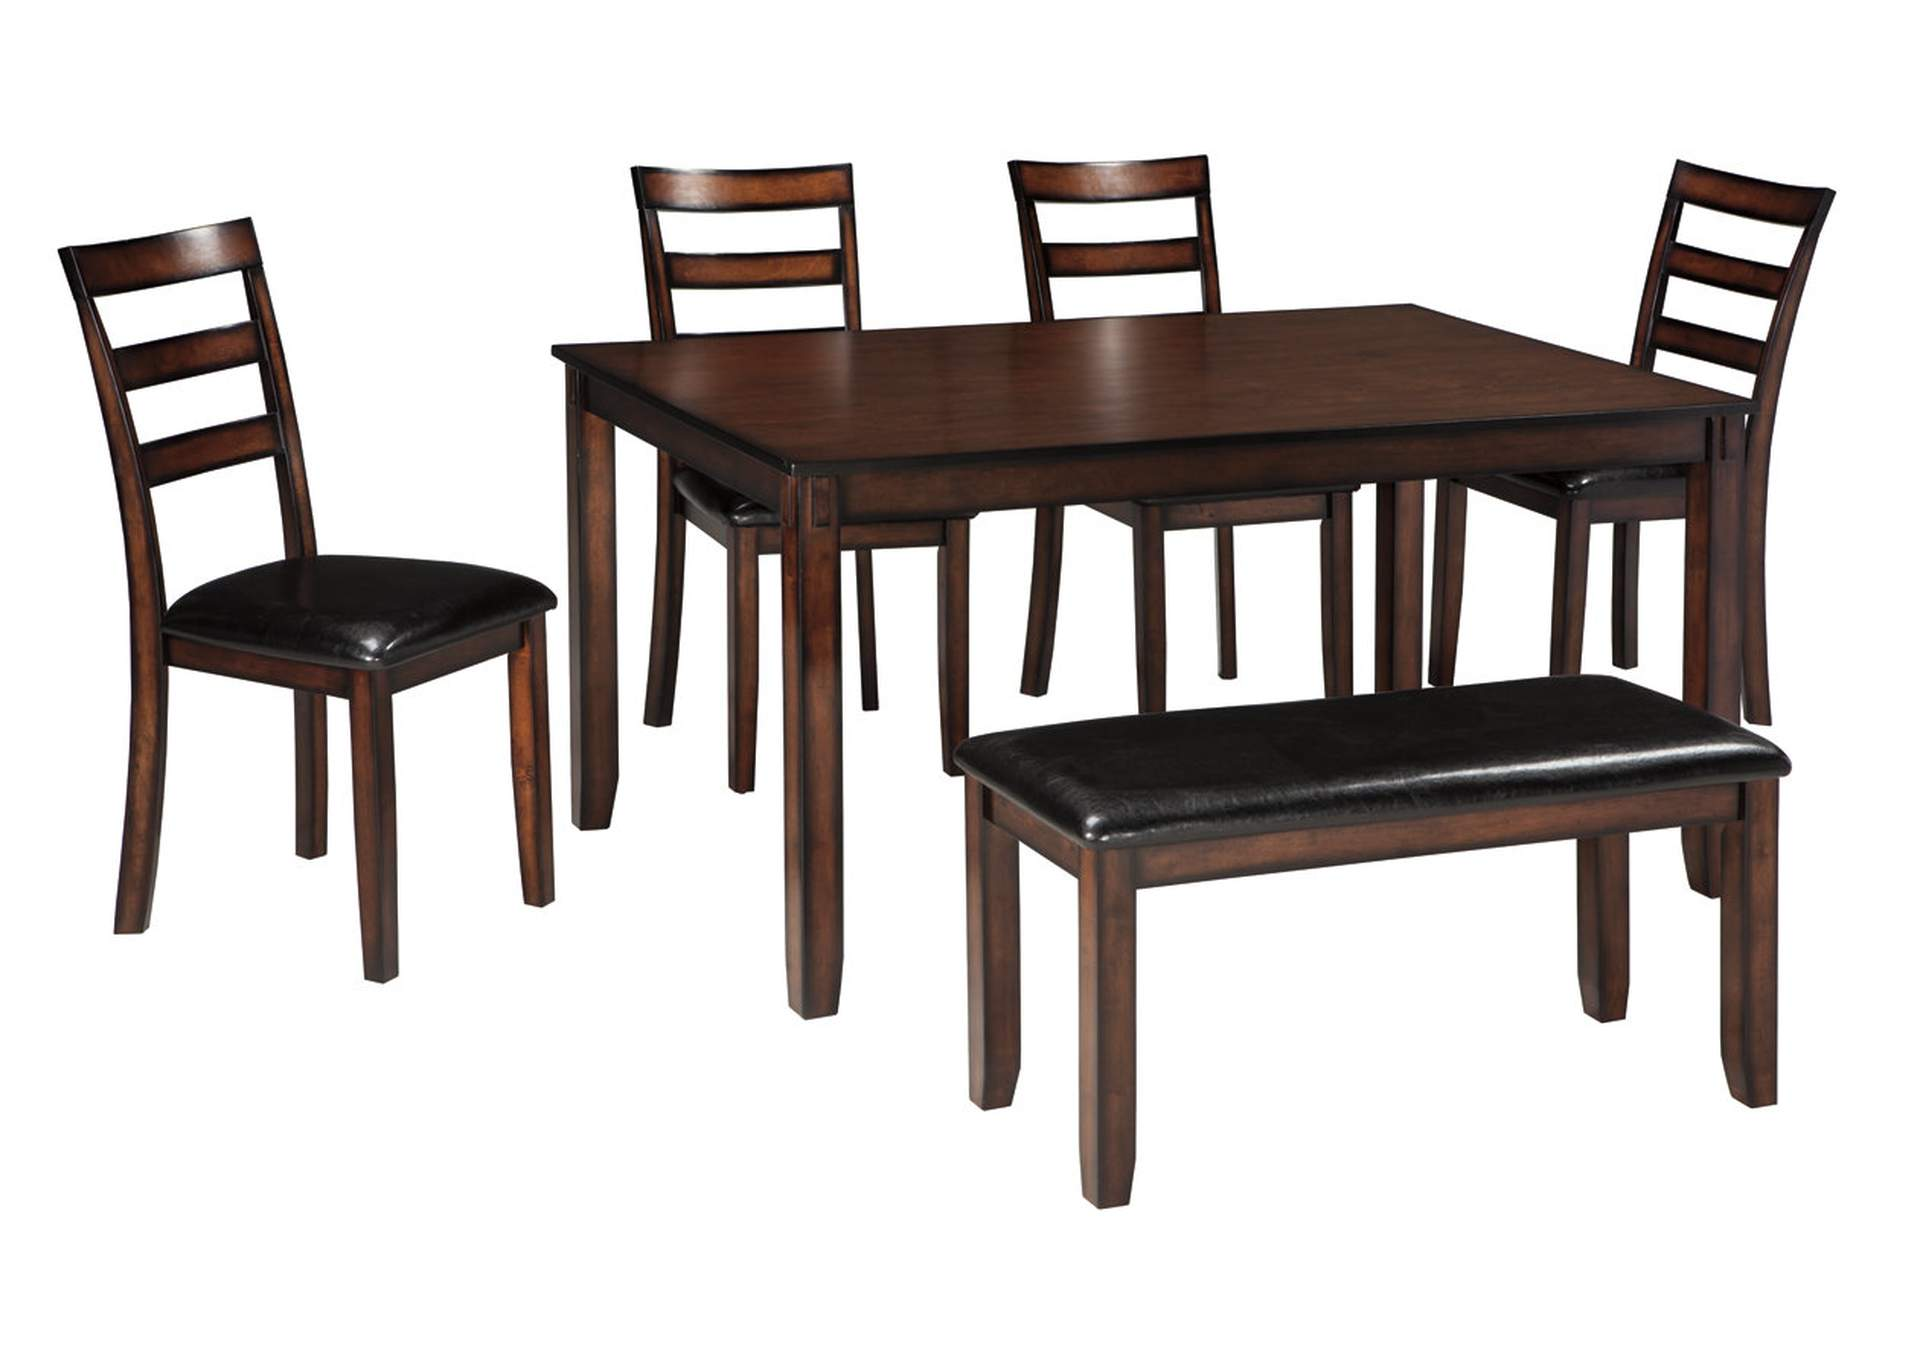 Davis home furniture asheville nc coviar brown dining room table set Davis home furniture asheville hours